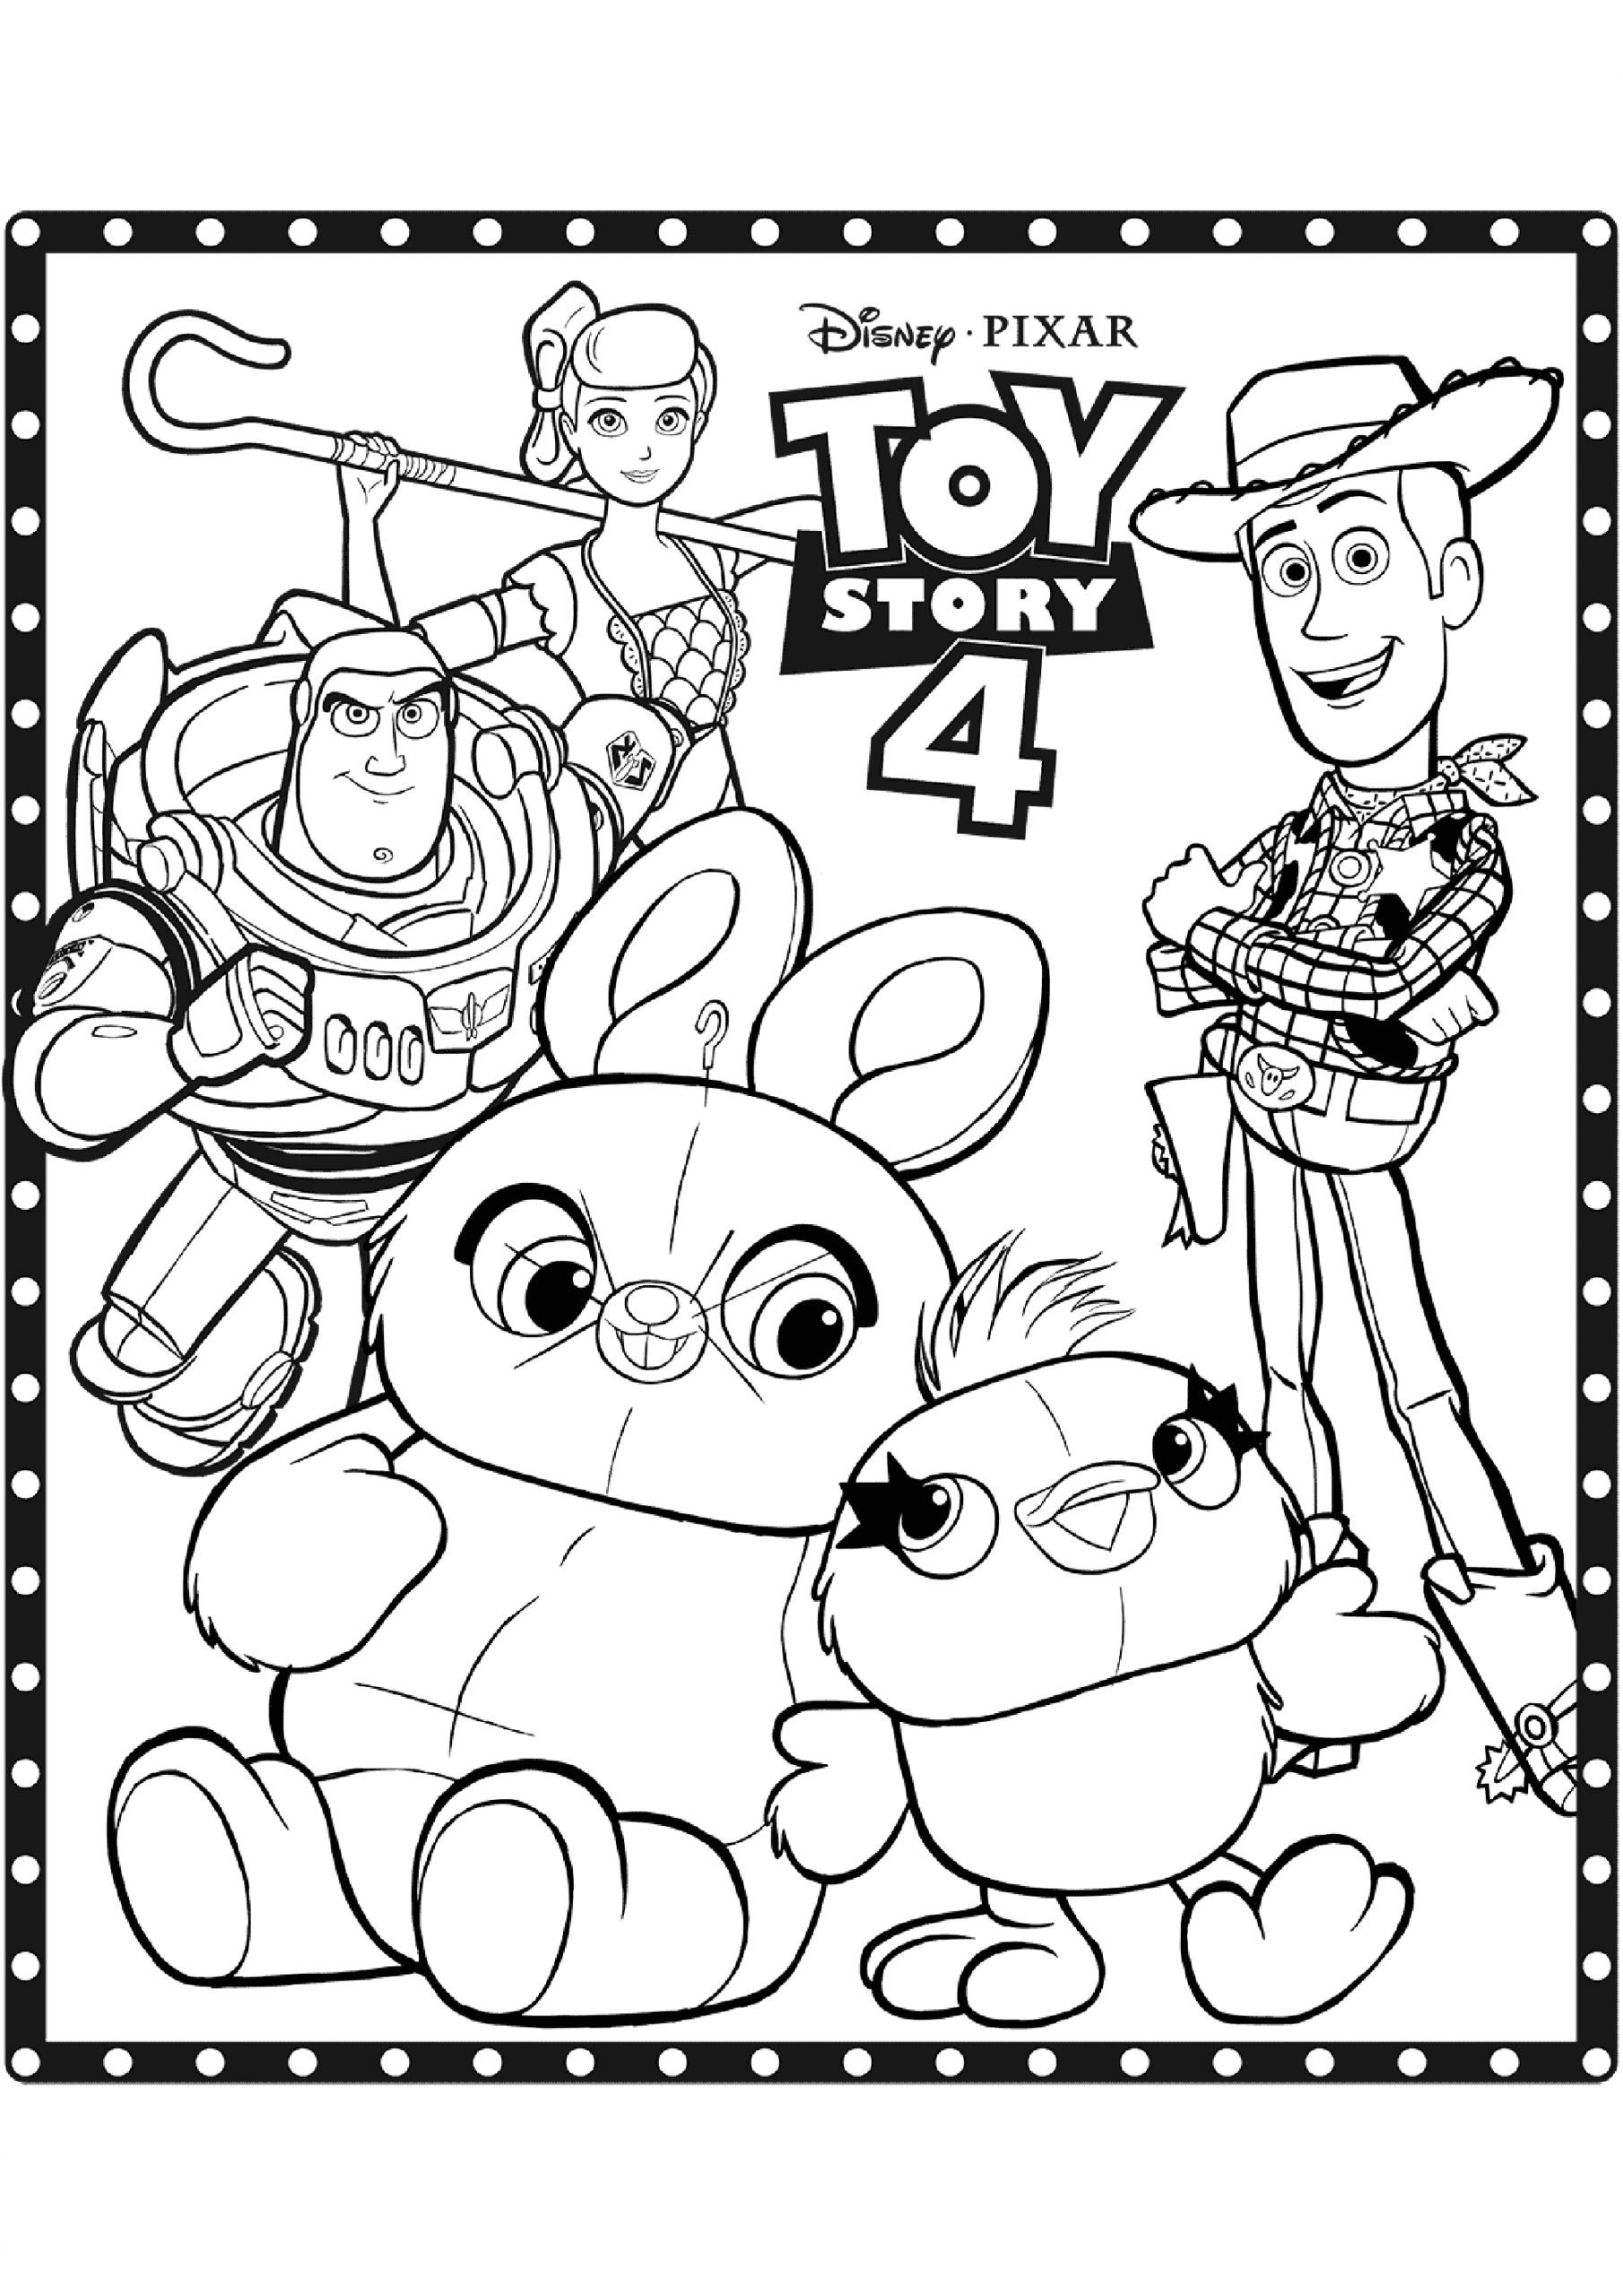 image=toy story 4 coloring pages for children toy story 4 3